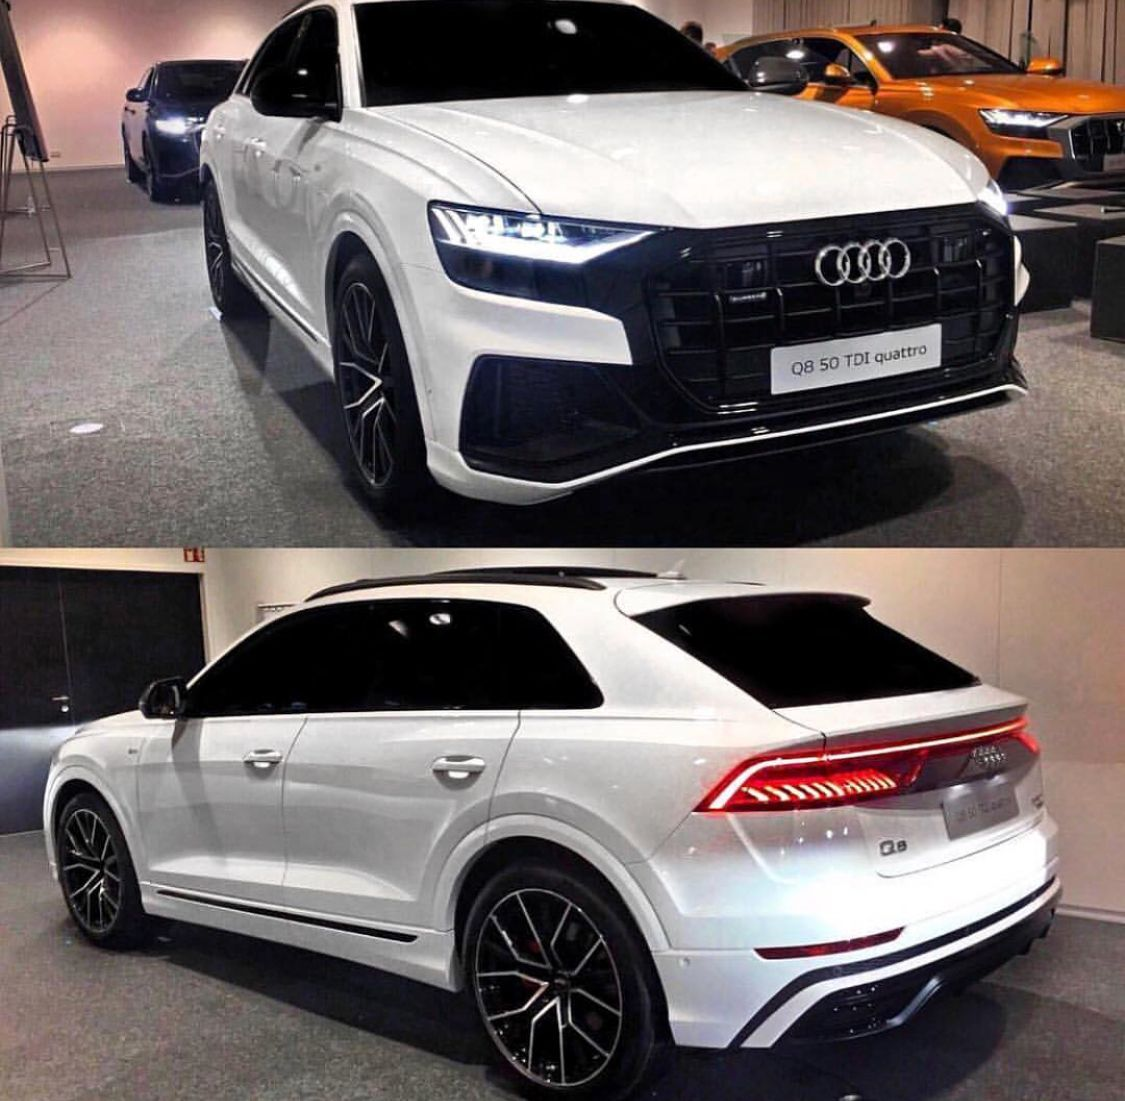 Lighting Whitewhite Lighting Audi Audi Quattro Audi 7